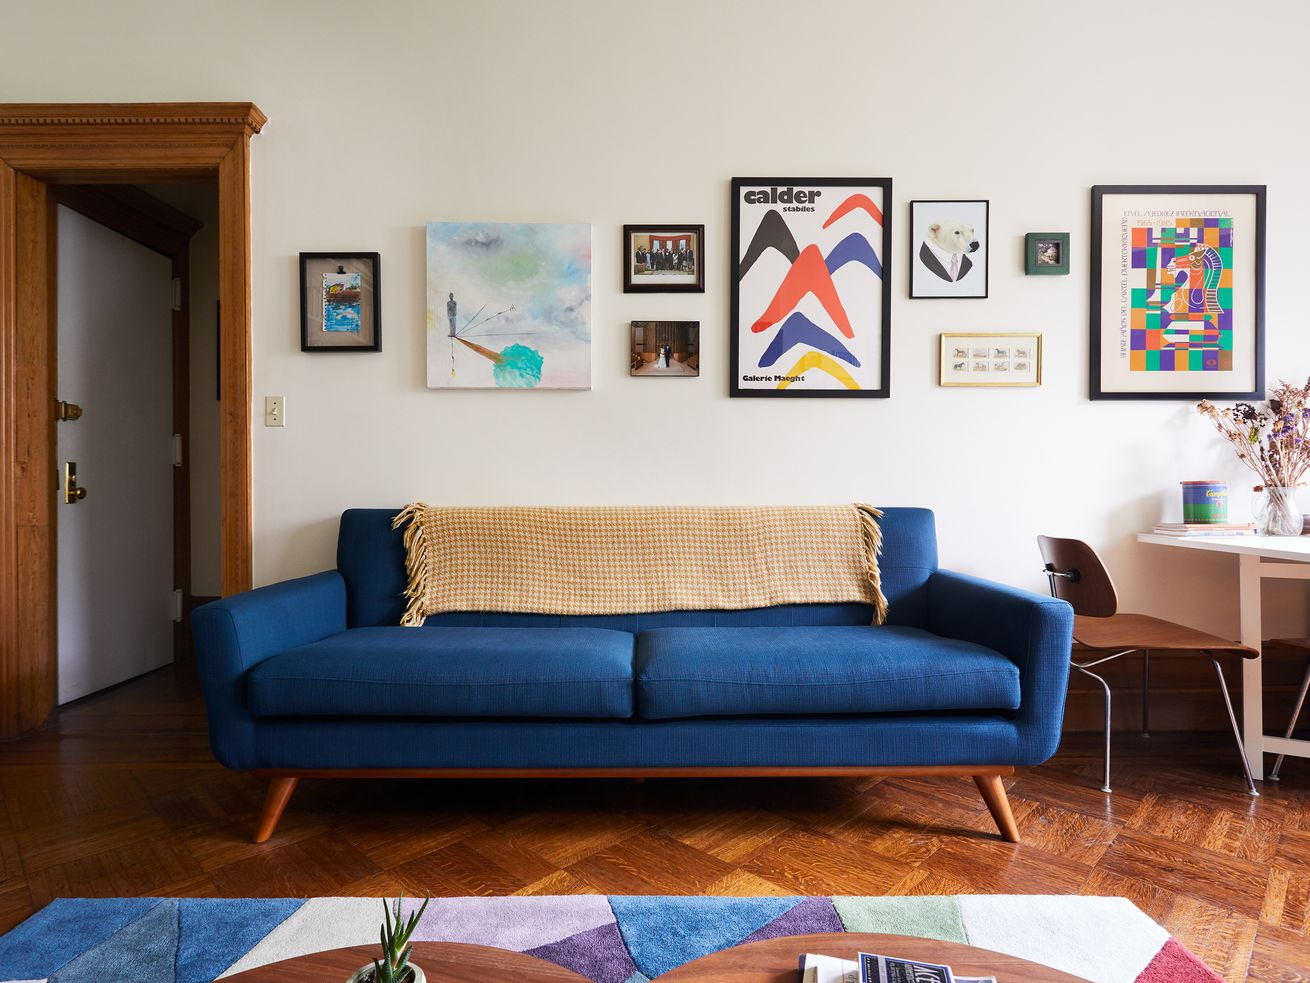 A living room with a blue midcentury-style couch in the center. A colorful geometric rug sits afoot, above herringbone floors. Various artworks hang on white walls.